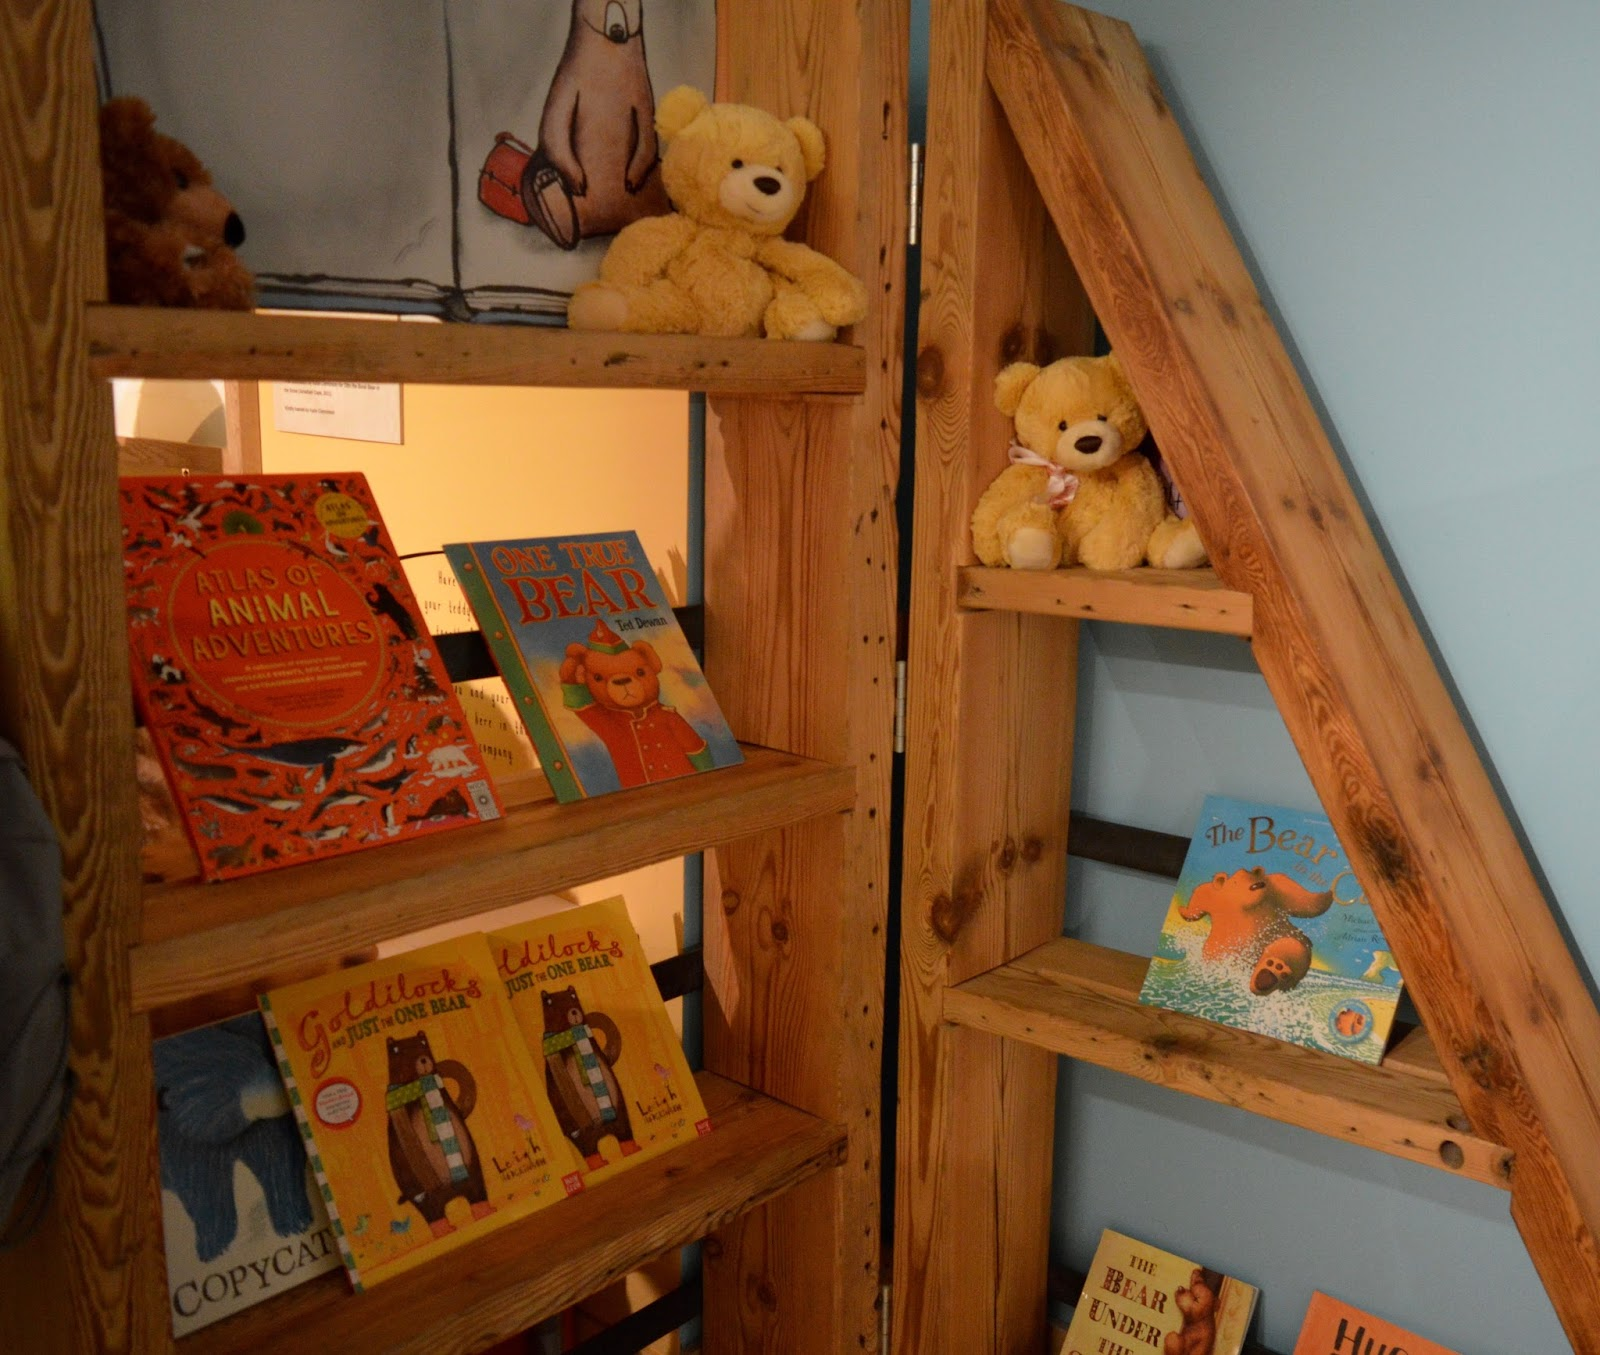 Seven Stories Newcastle | Parking & Admission plus Bears! Exhibition Review - bear story books